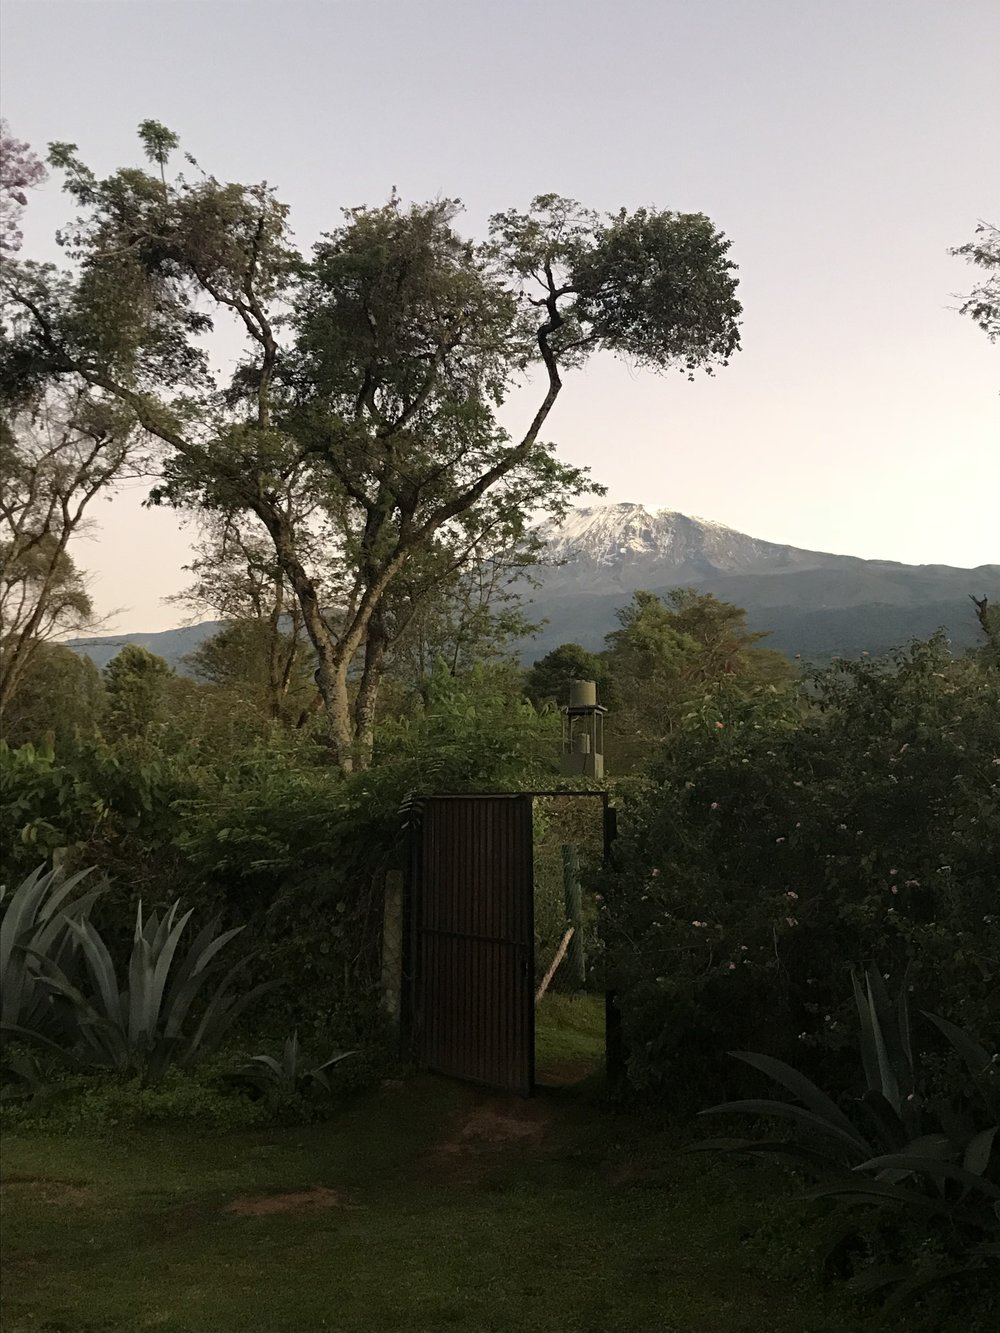 Good morning Mount Kilimanjaro!